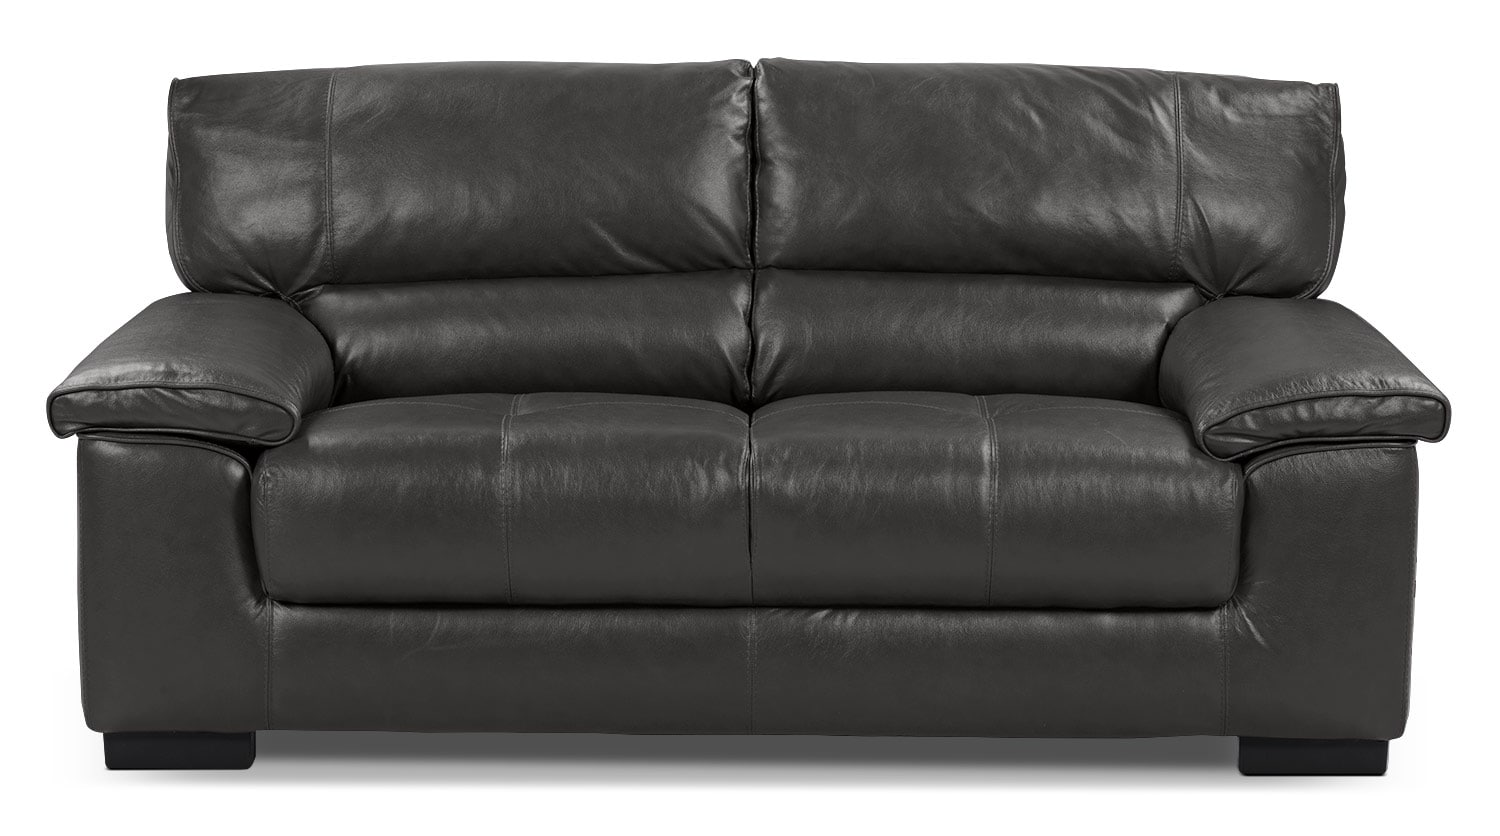 Chateau Du0027Ax 100% Genuine Leather Loveseat   Charcoal